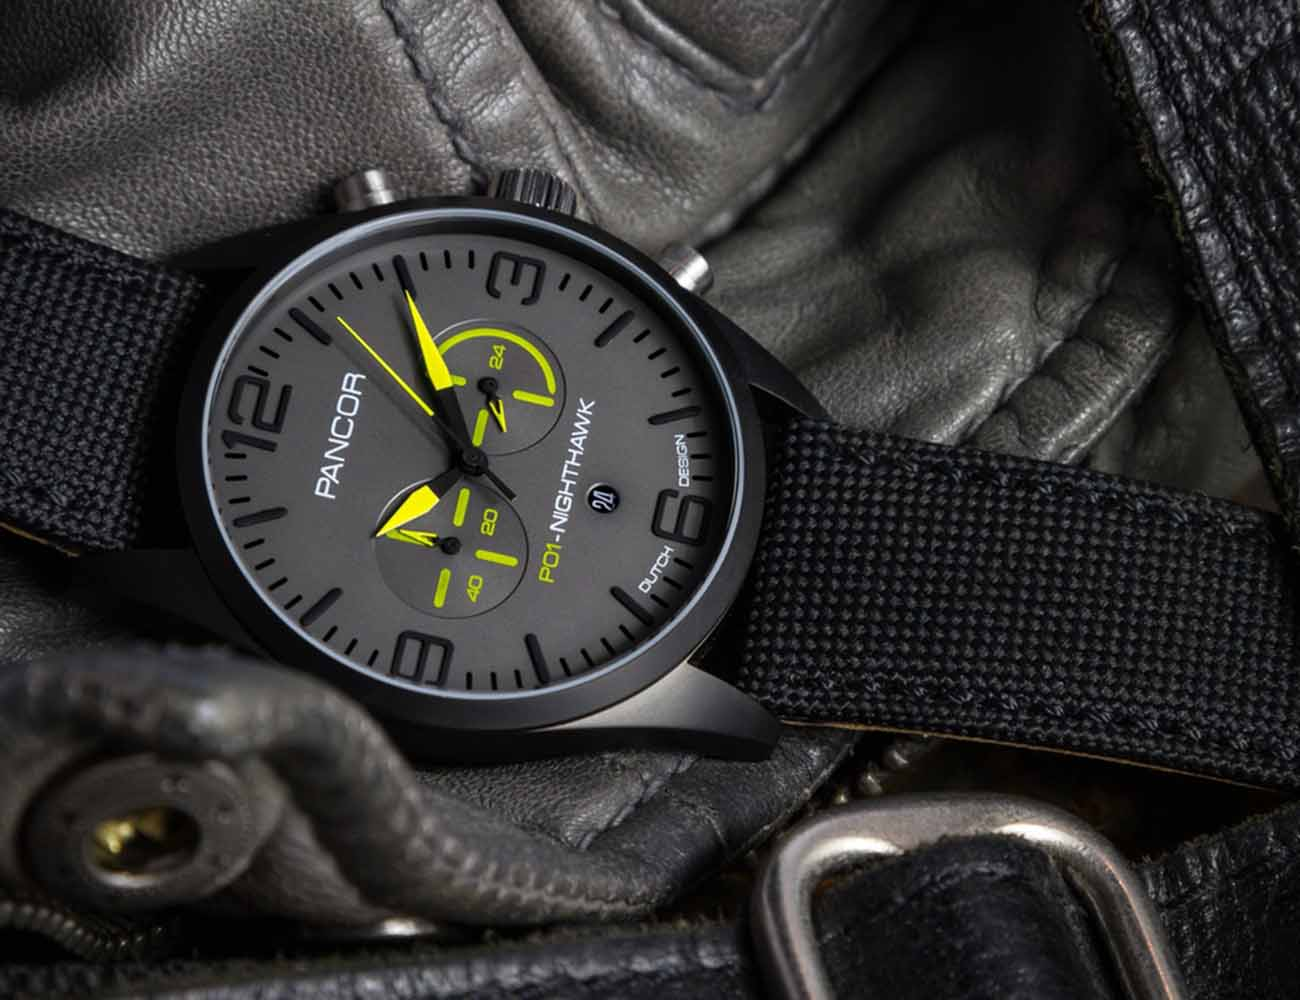 Pancor Watch – Genius Pairing of Functionality and Style